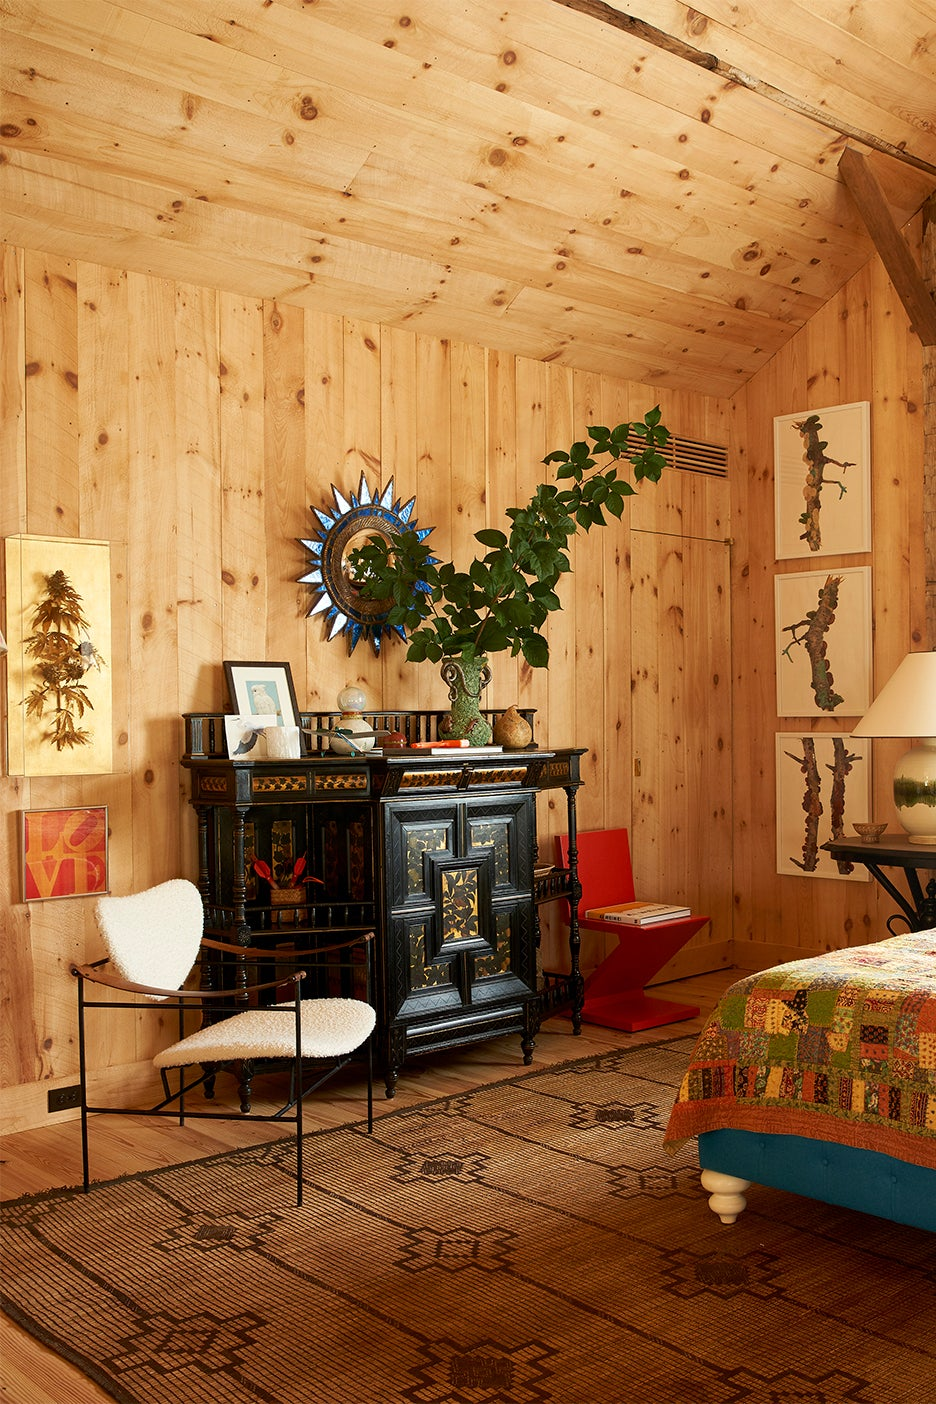 Wood-paneled bedroom with antiques